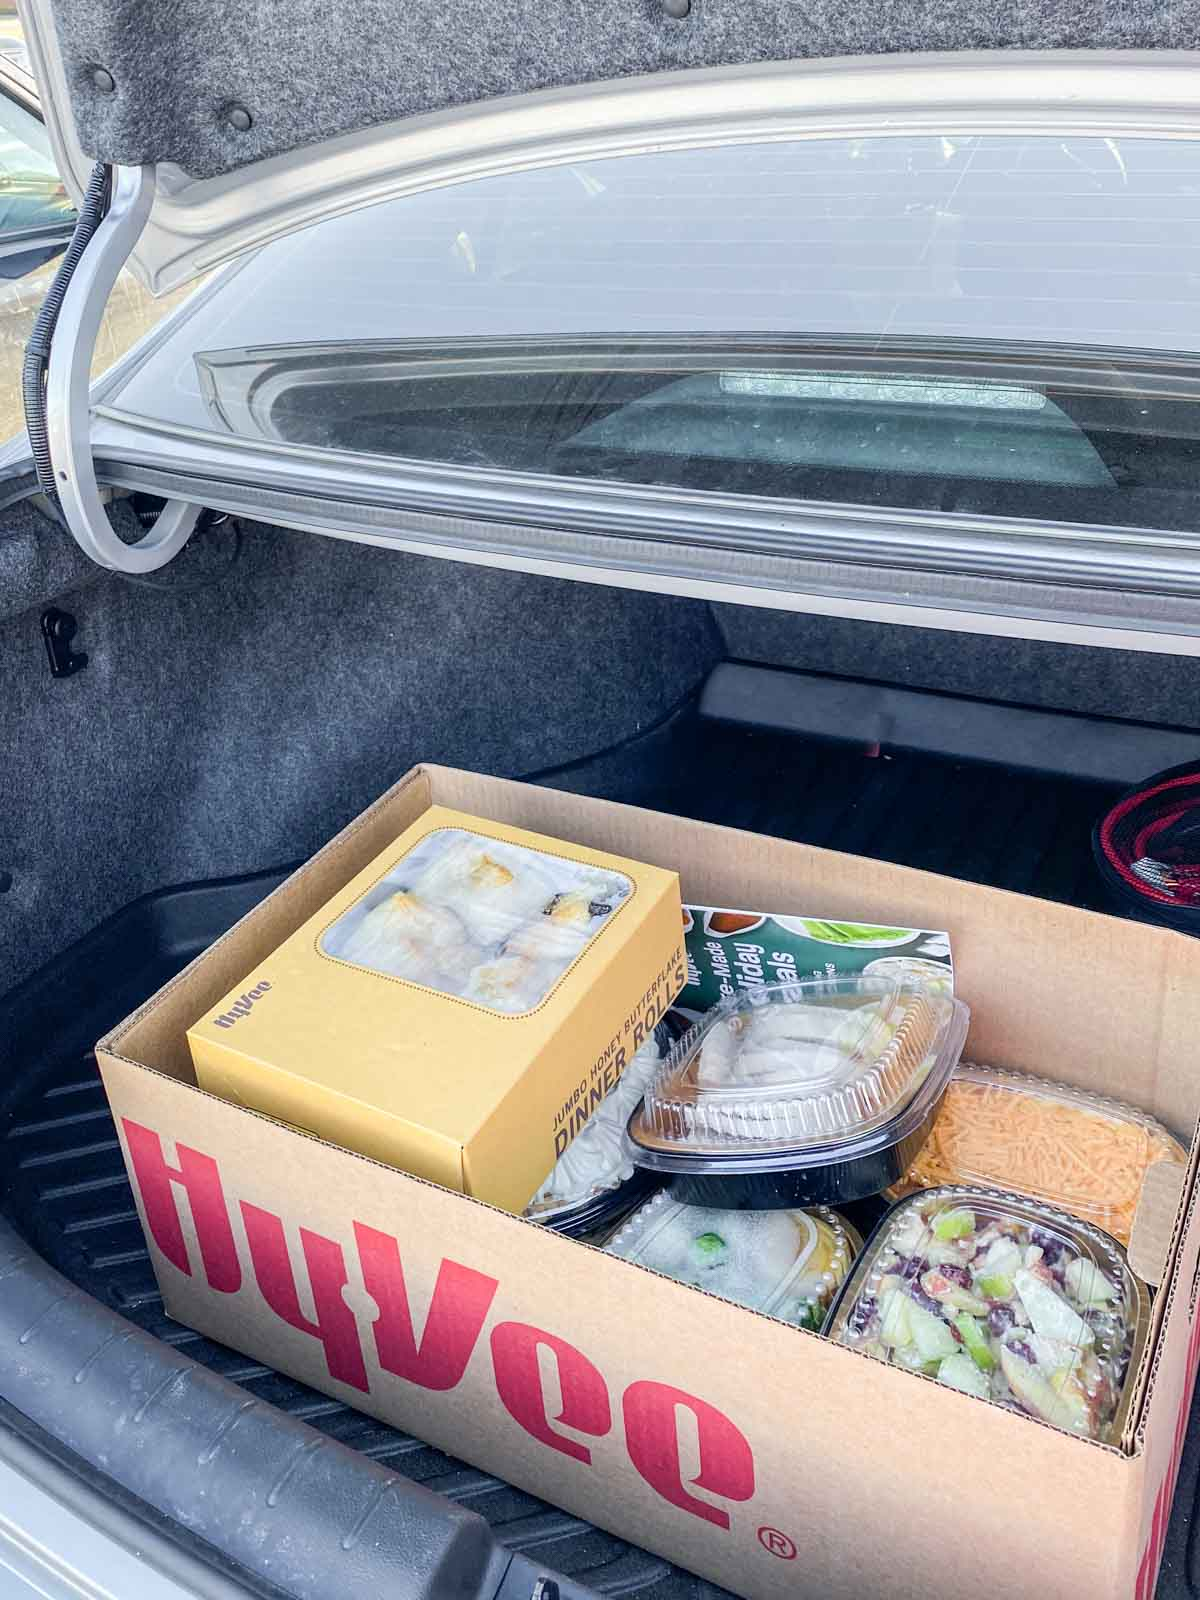 Hyvee box with food in the back of a trunk